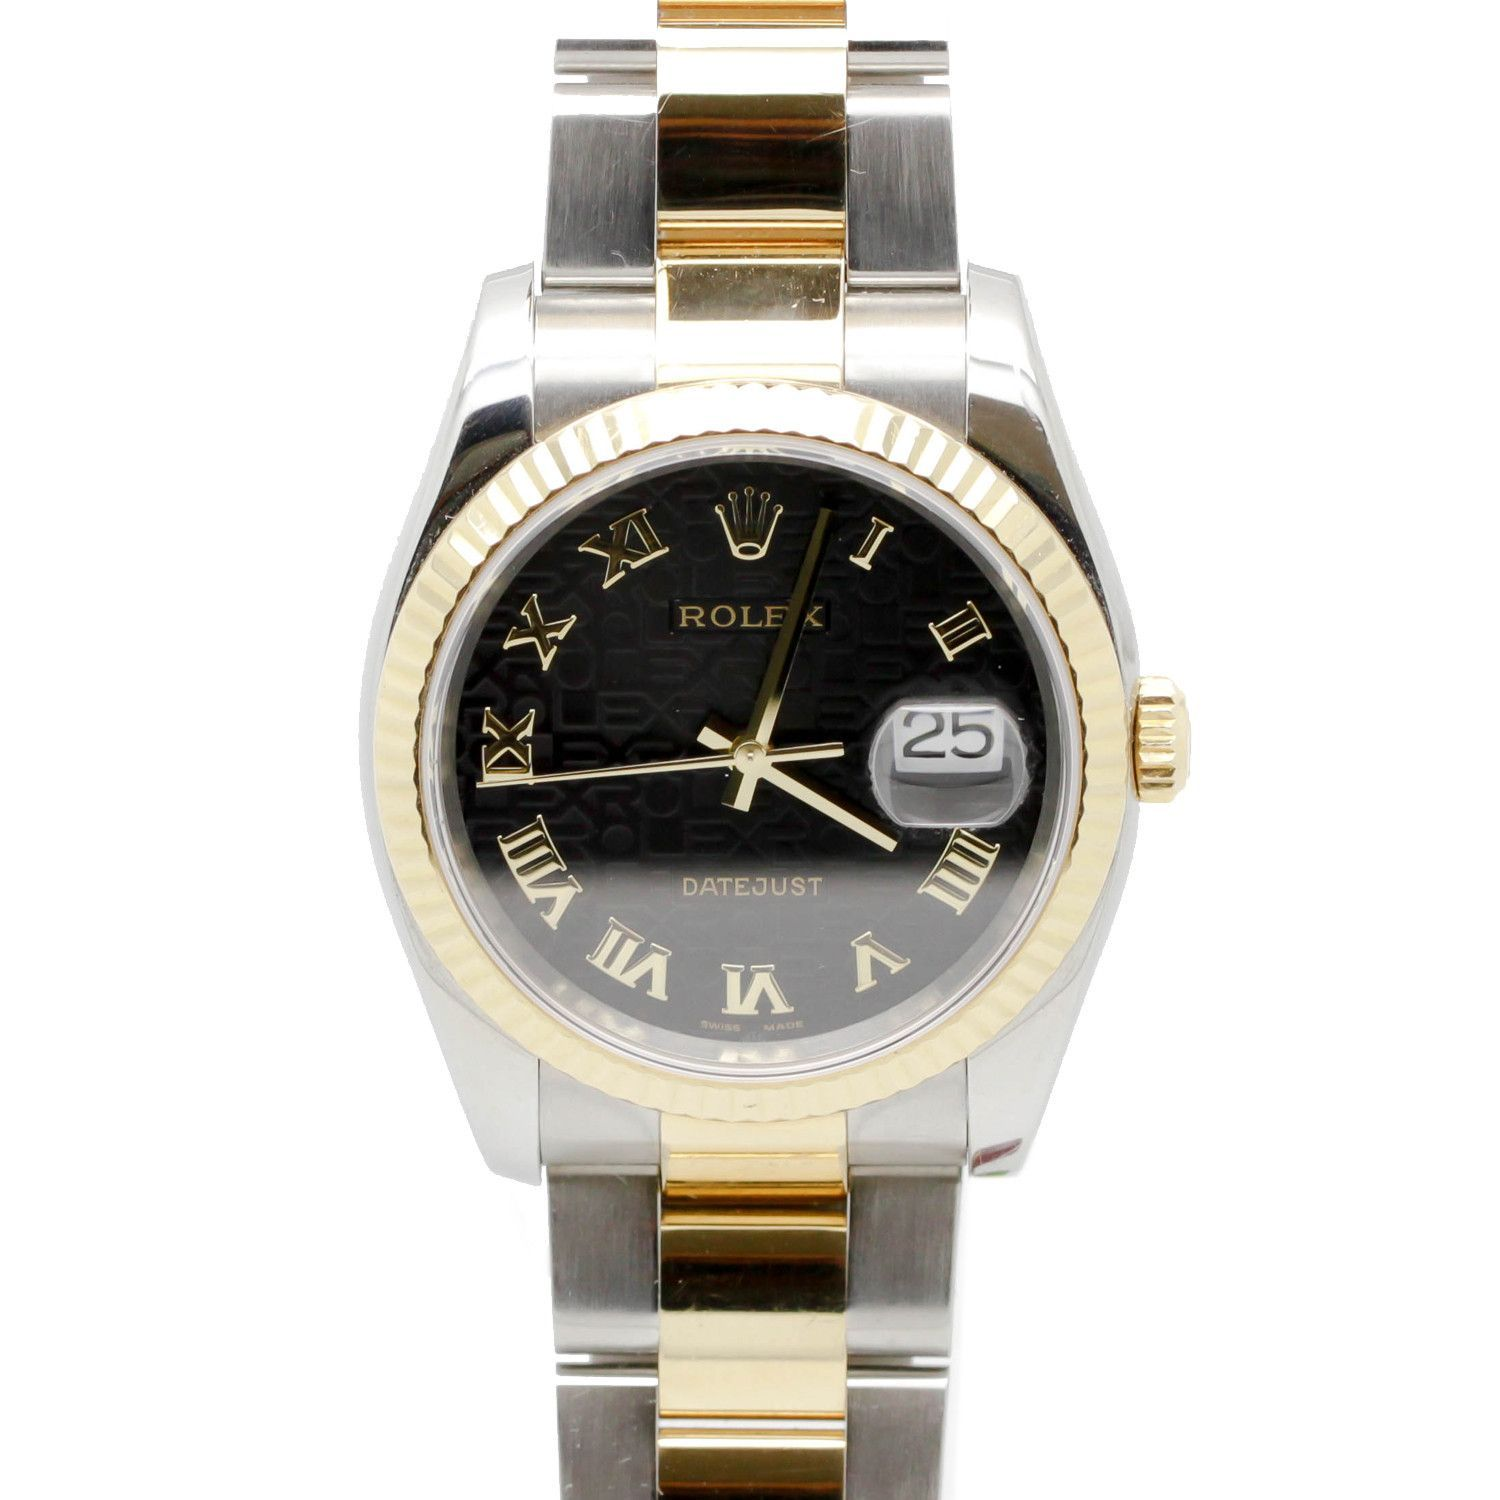 Rolex Datejust Stainless Steel & 18K Yellow Gold 41mm Mens Watch Limited Dial